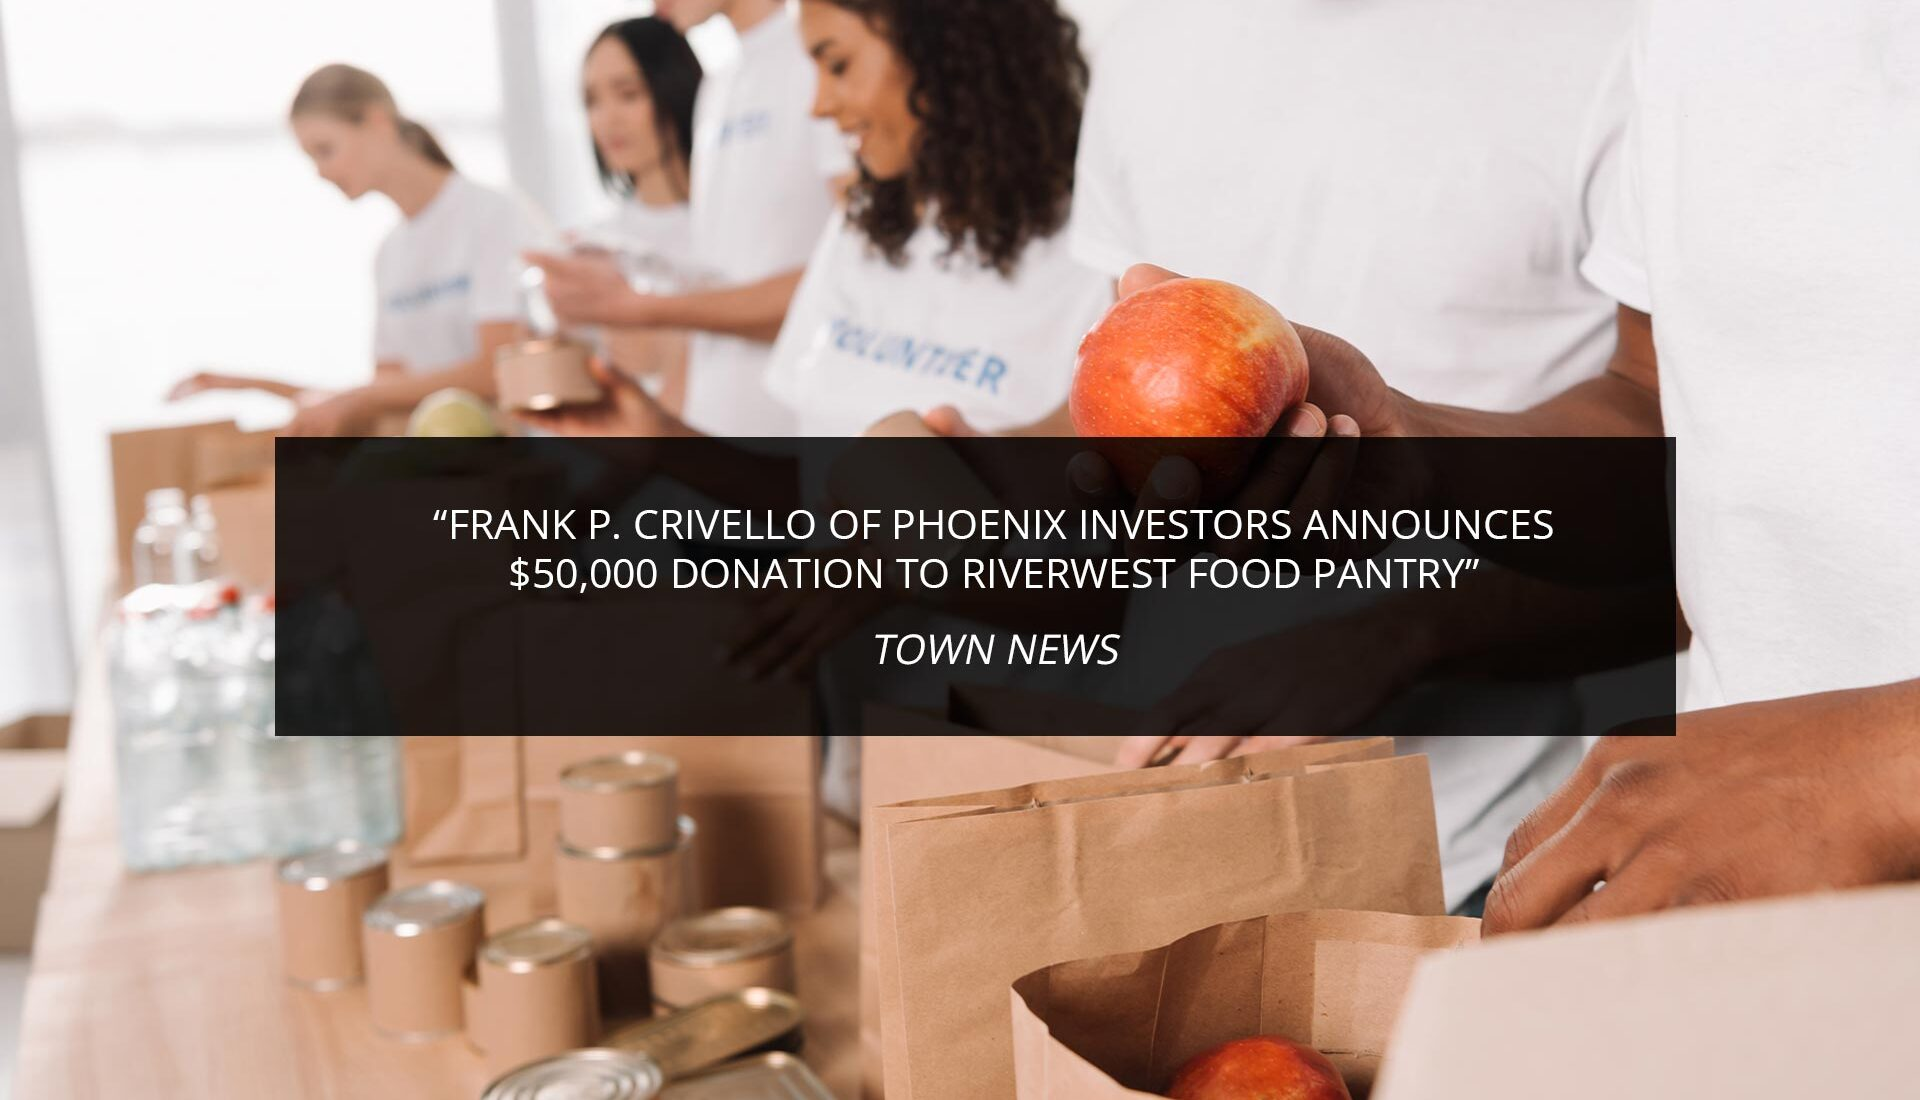 Frank P. Crivello Of Phoenix Investors Announces $50,000 Donation To Riverwest Food Pantry